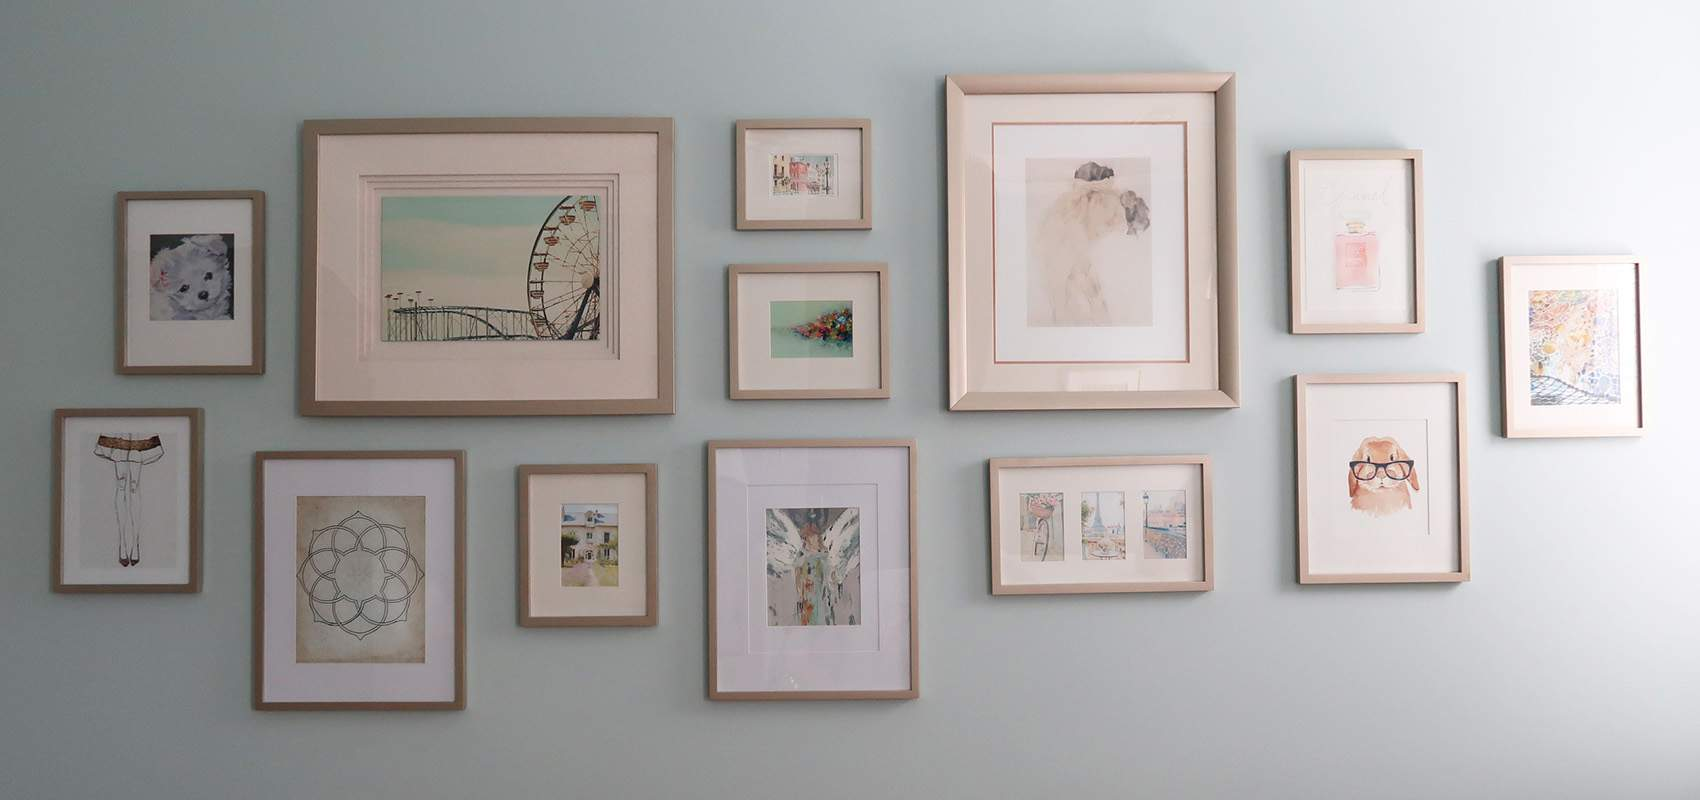 Easily Update Picture Frames With Spray Paint!